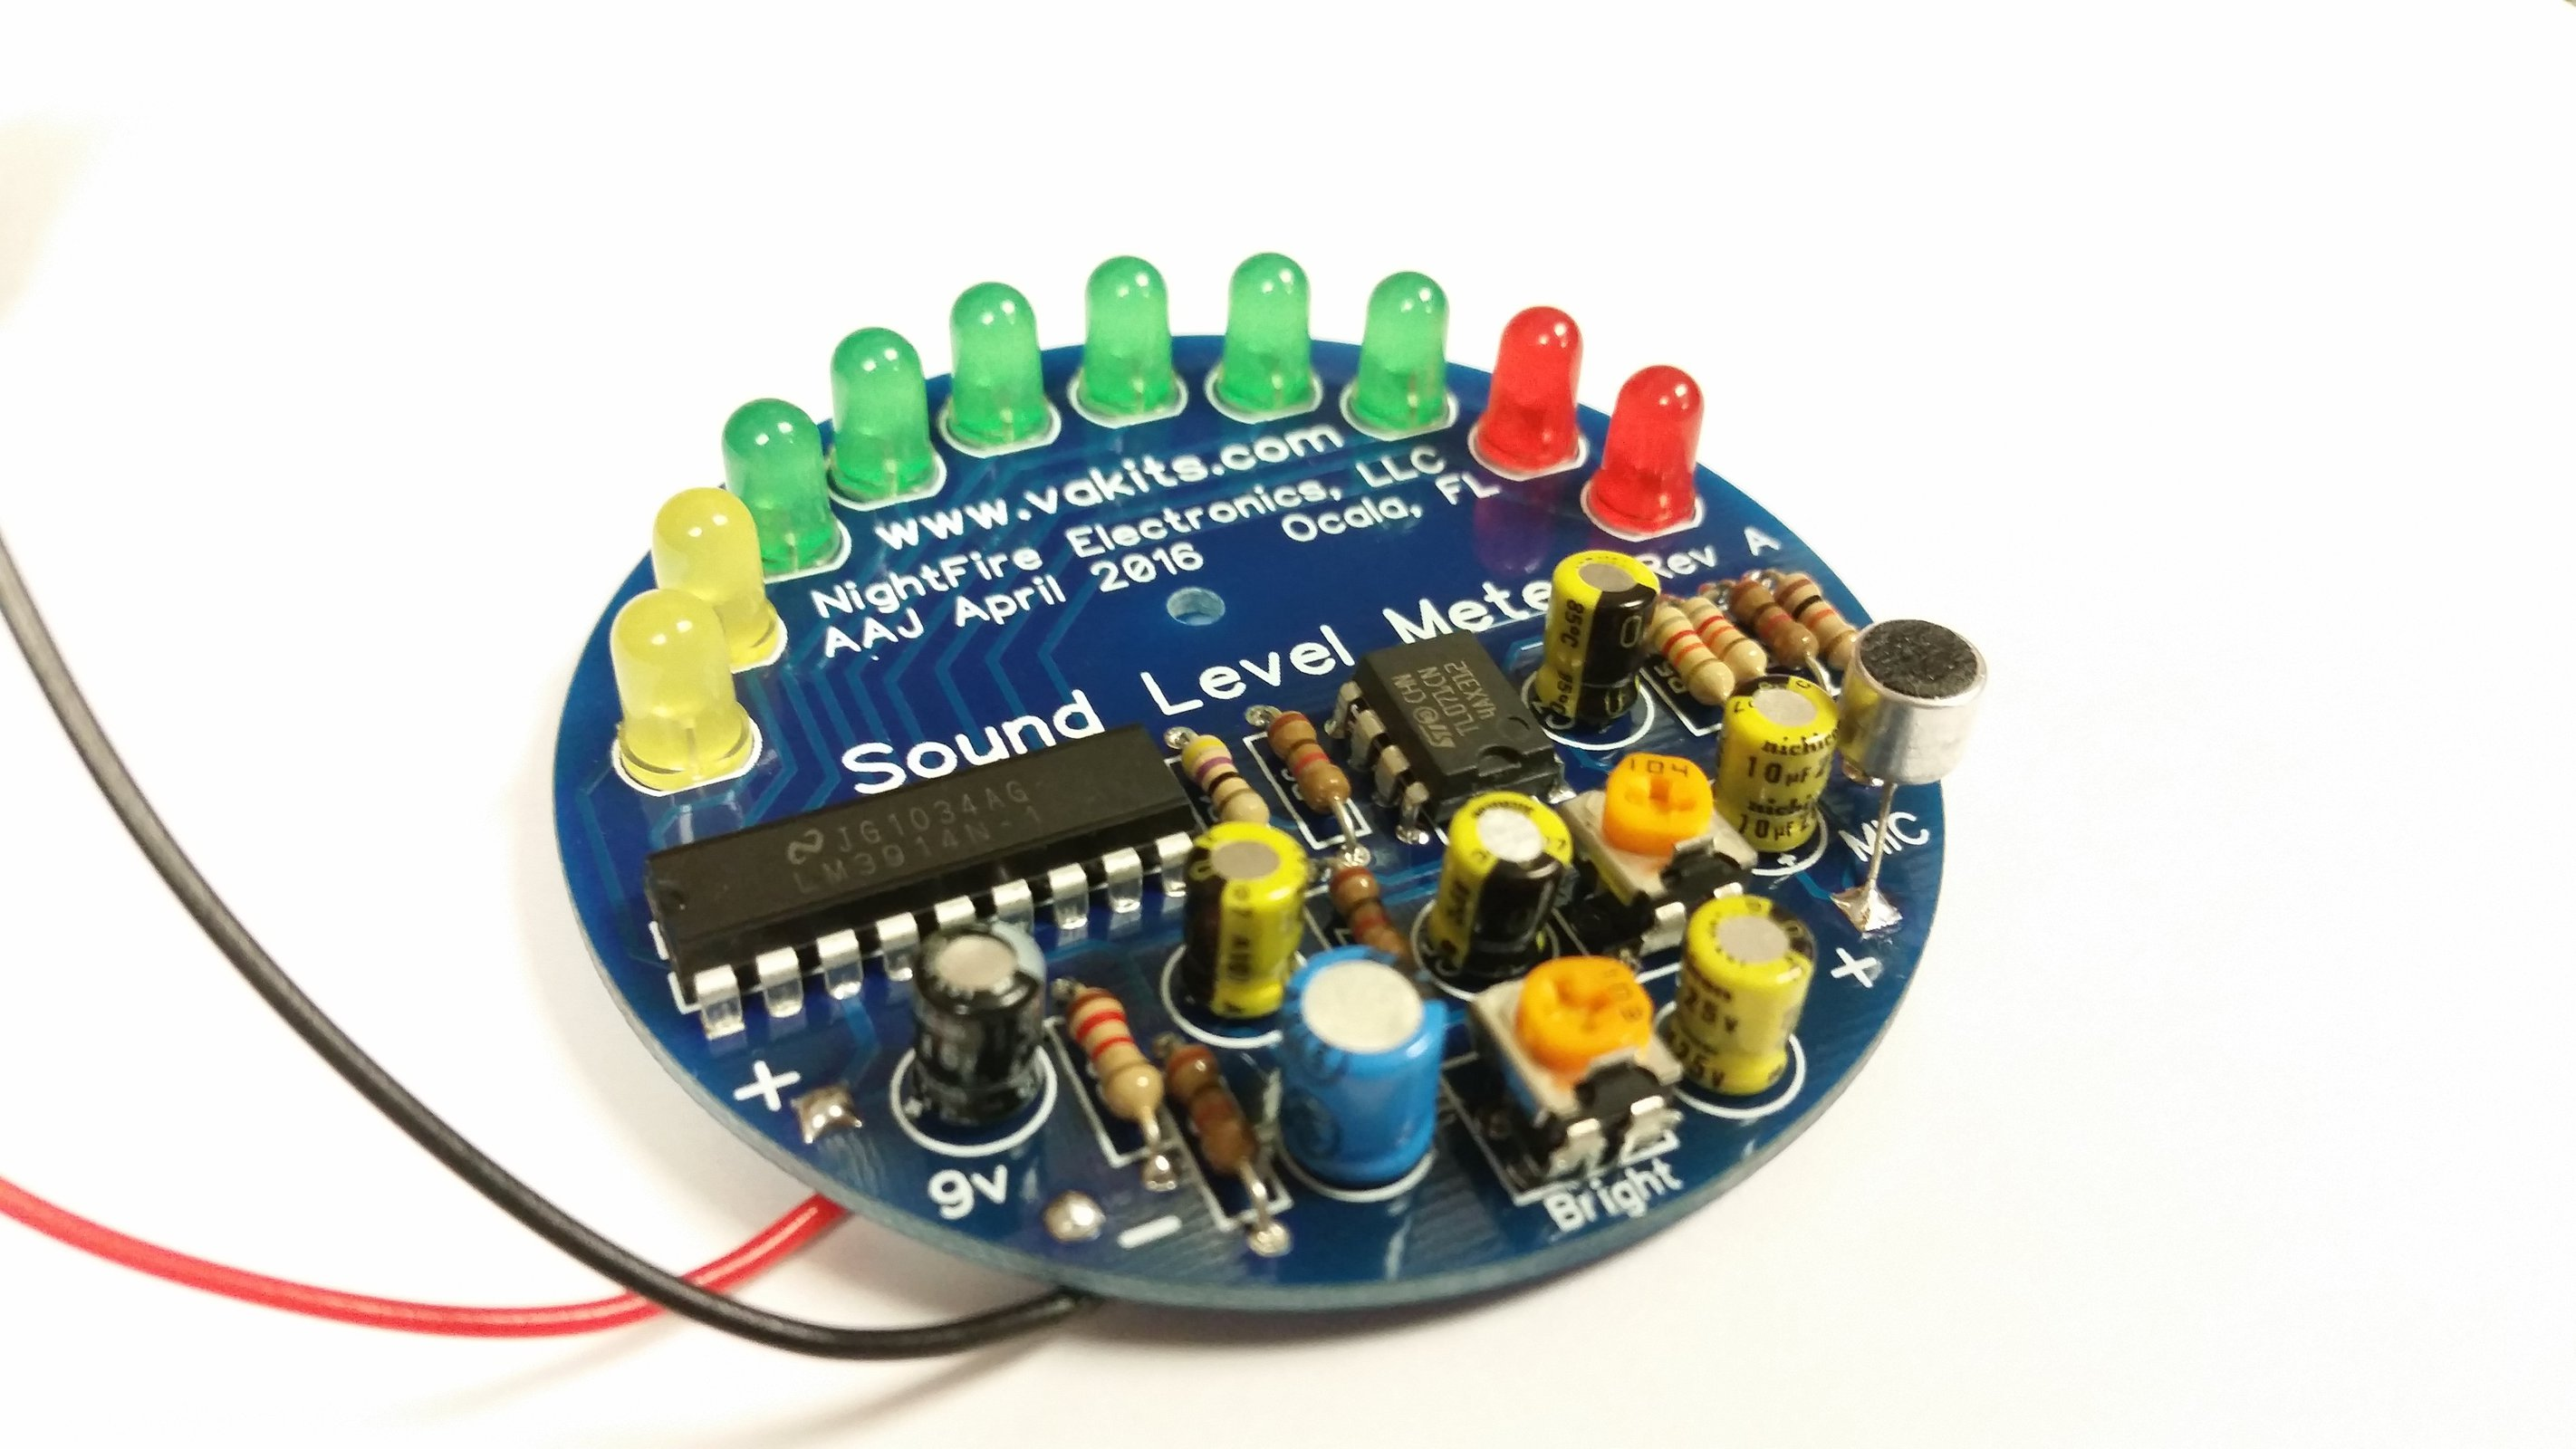 Led Sound Level Meter Kit From Nightfire Electronics Llc On Tindie Circuits Projects Electronic Kits Hobby More 1